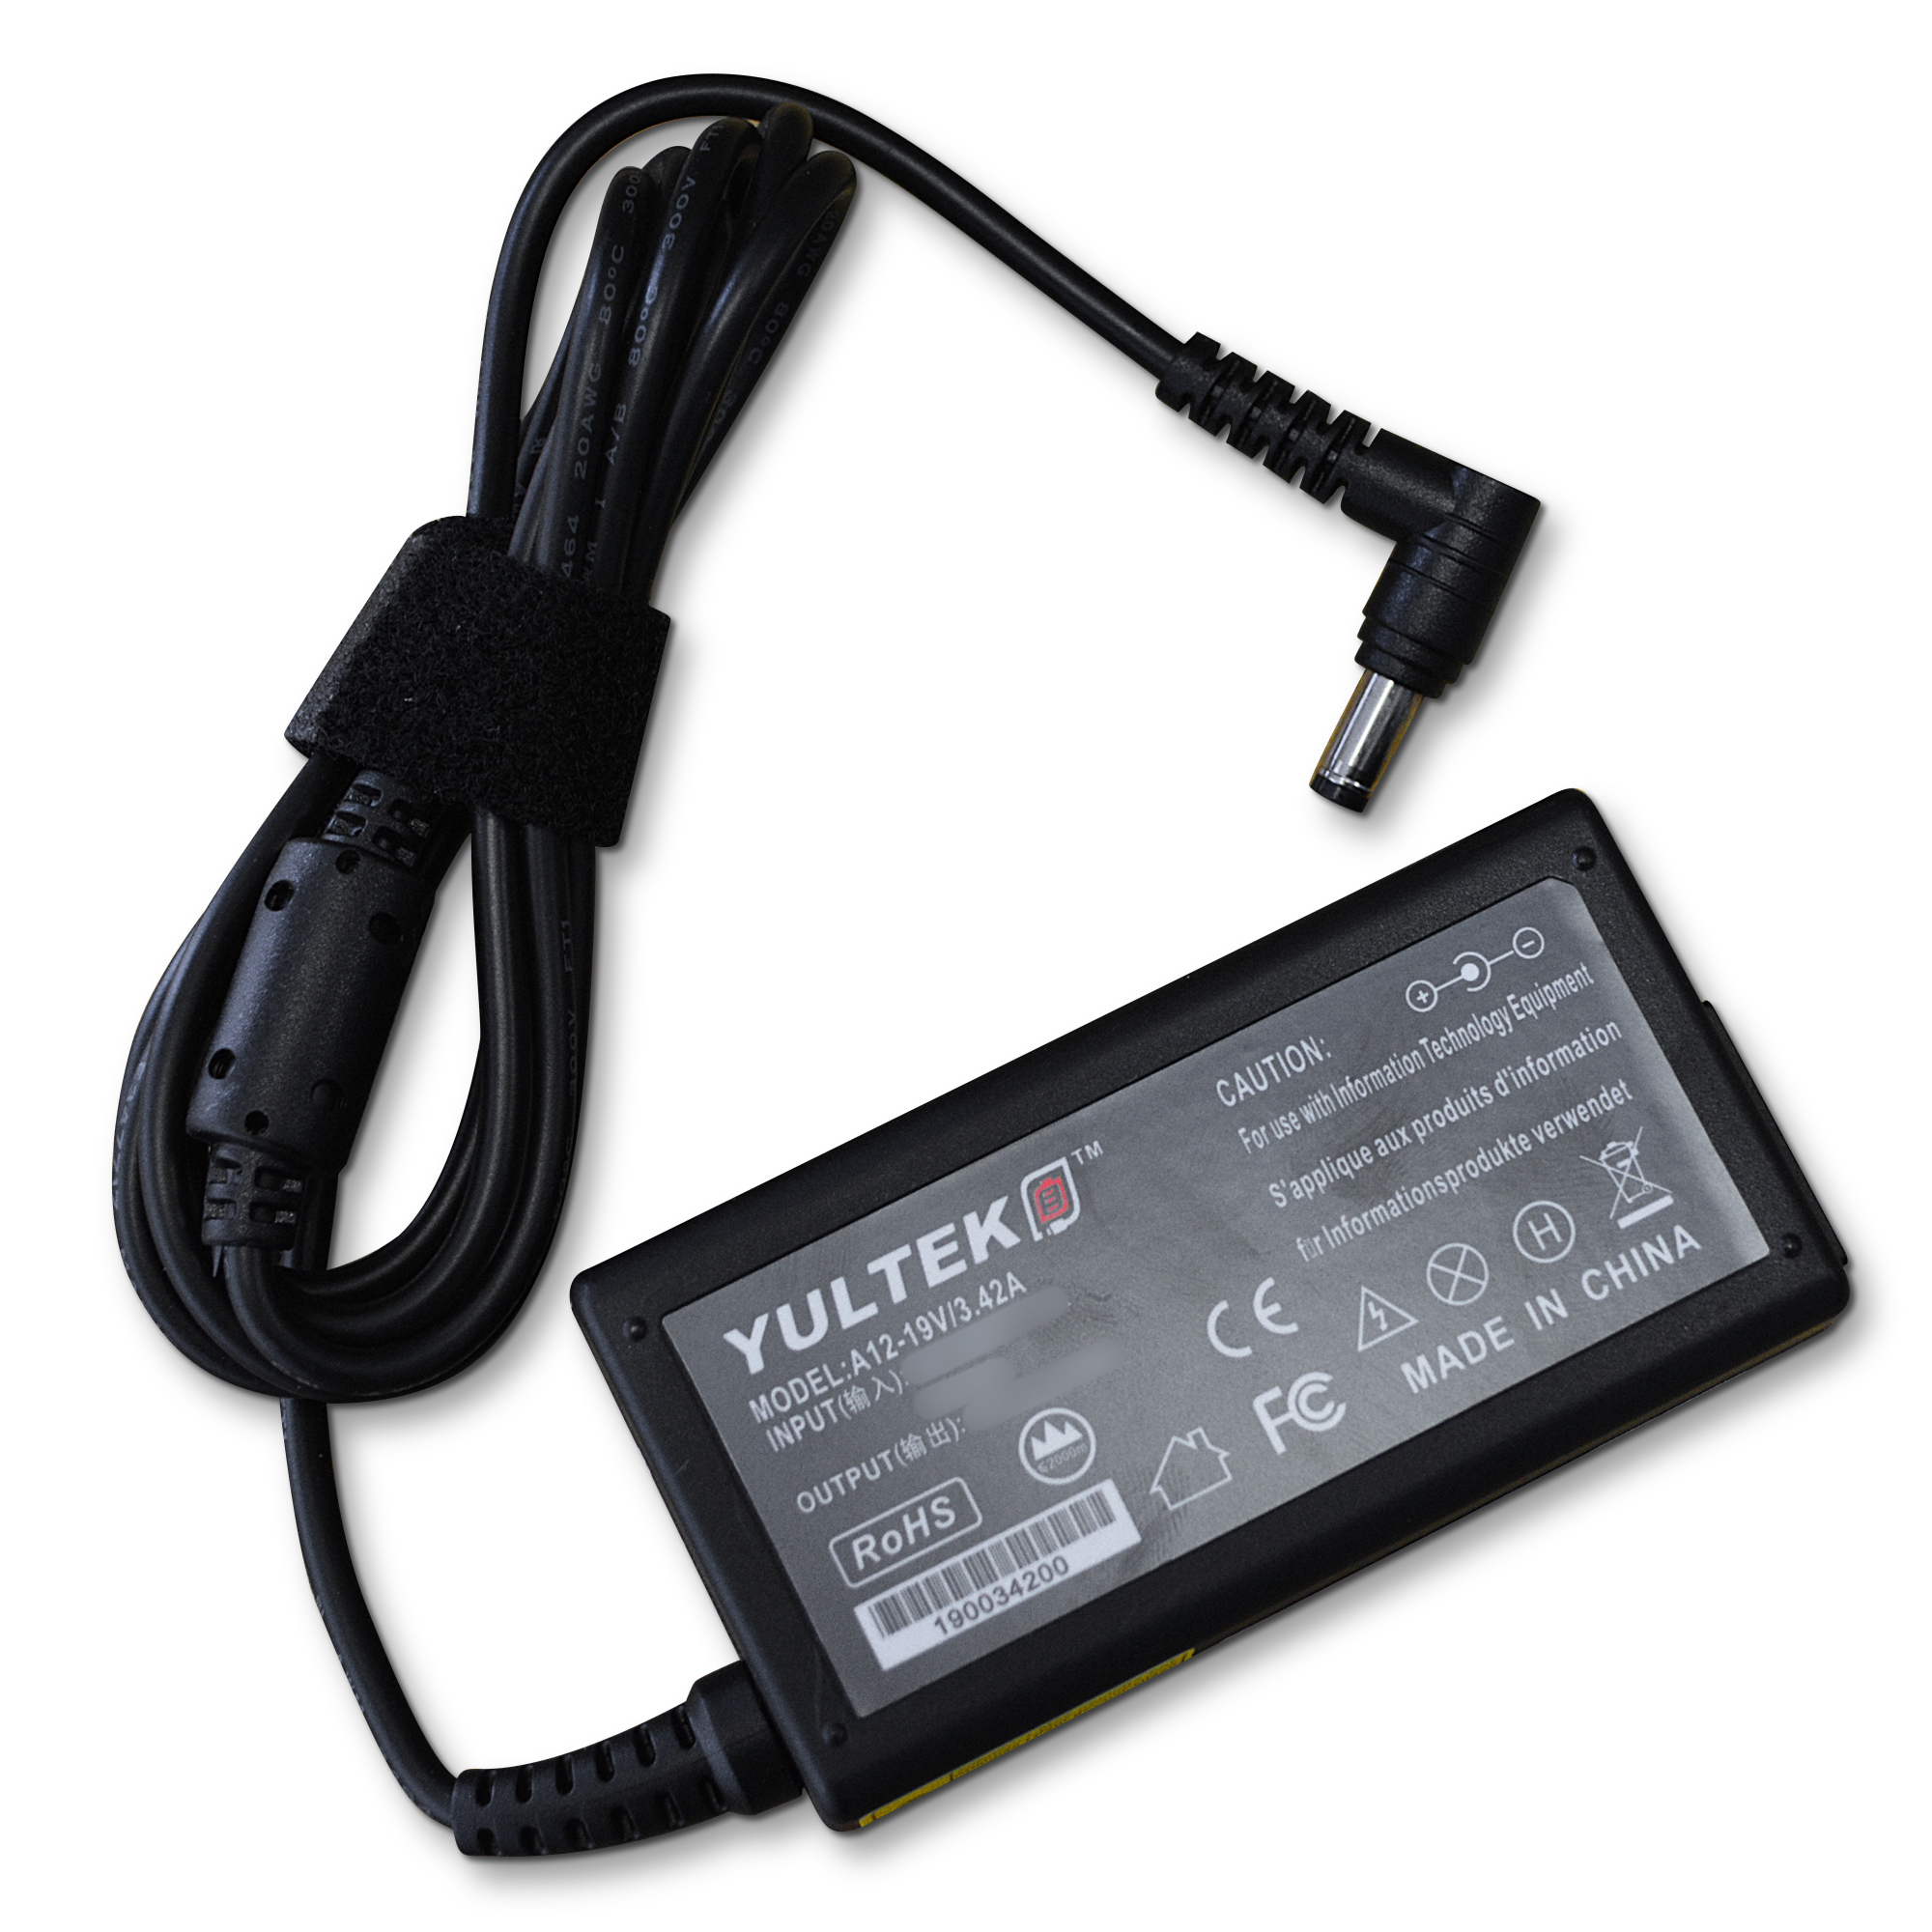 Fujitsu-Siemens Part Number FIU:12-01793-01 Laptop Charger